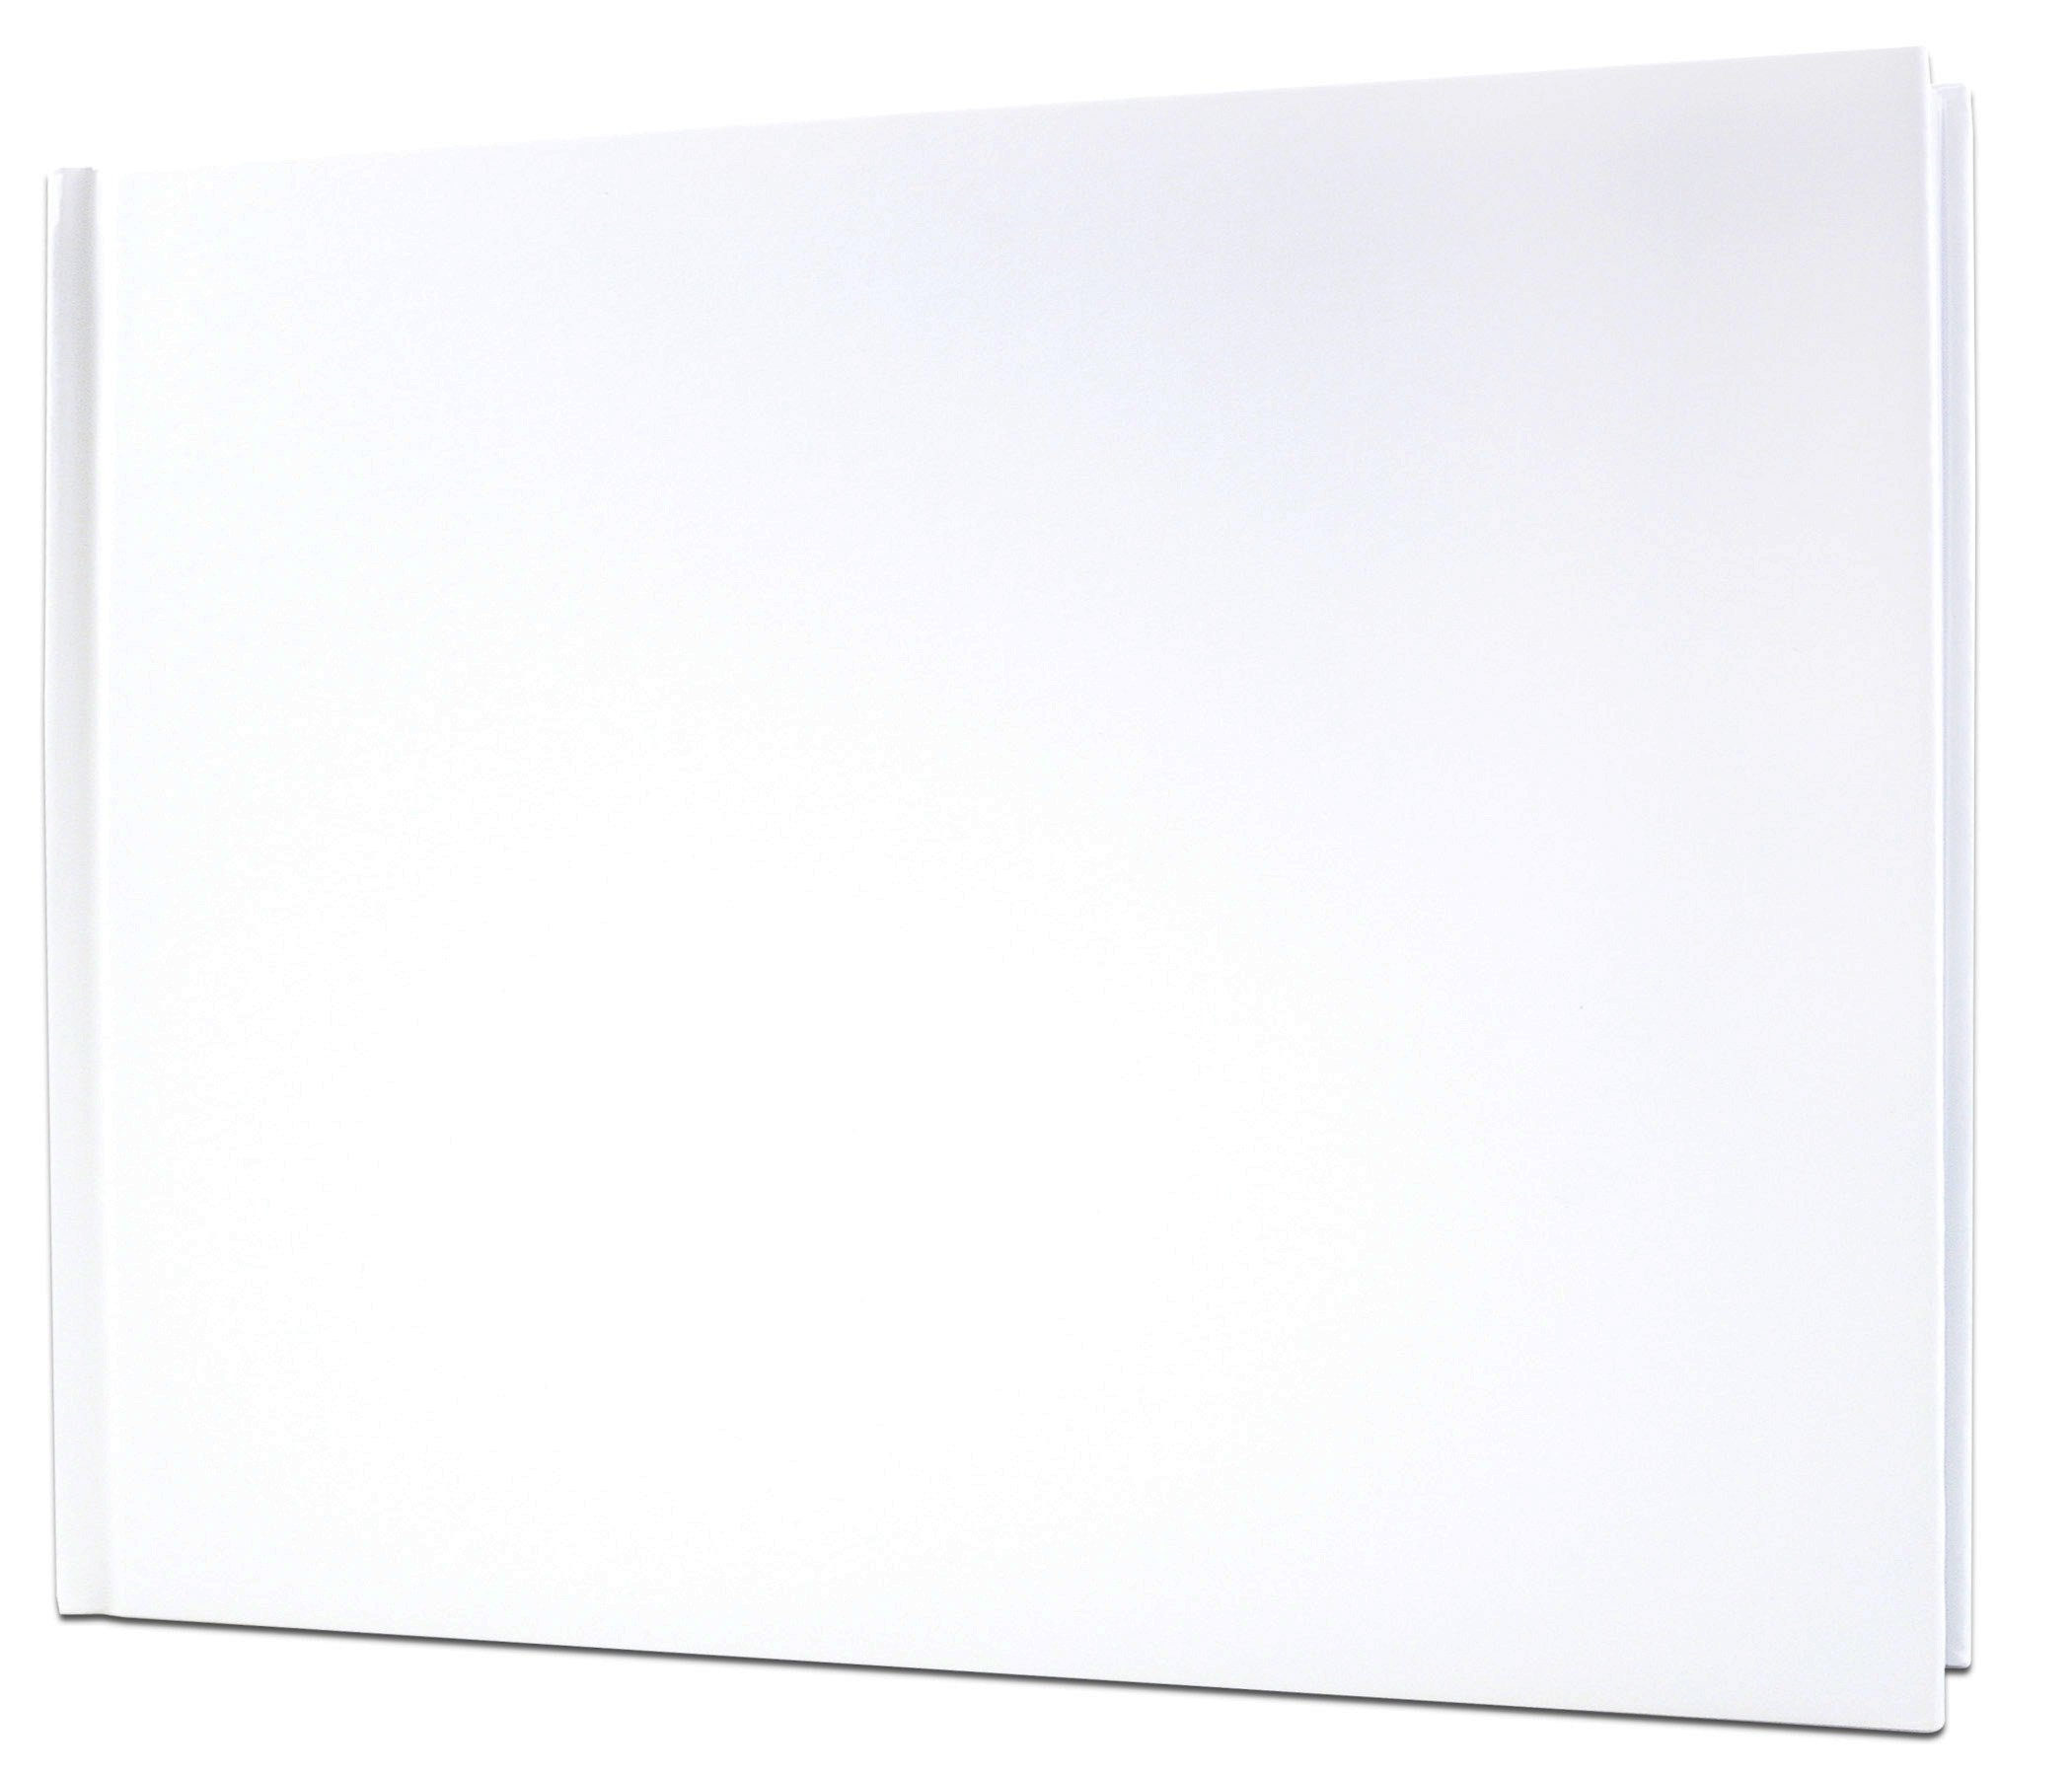 Flipside Products BK424 Hardcover Blank Books, CL PK 24,Grade: (Pack of 24)